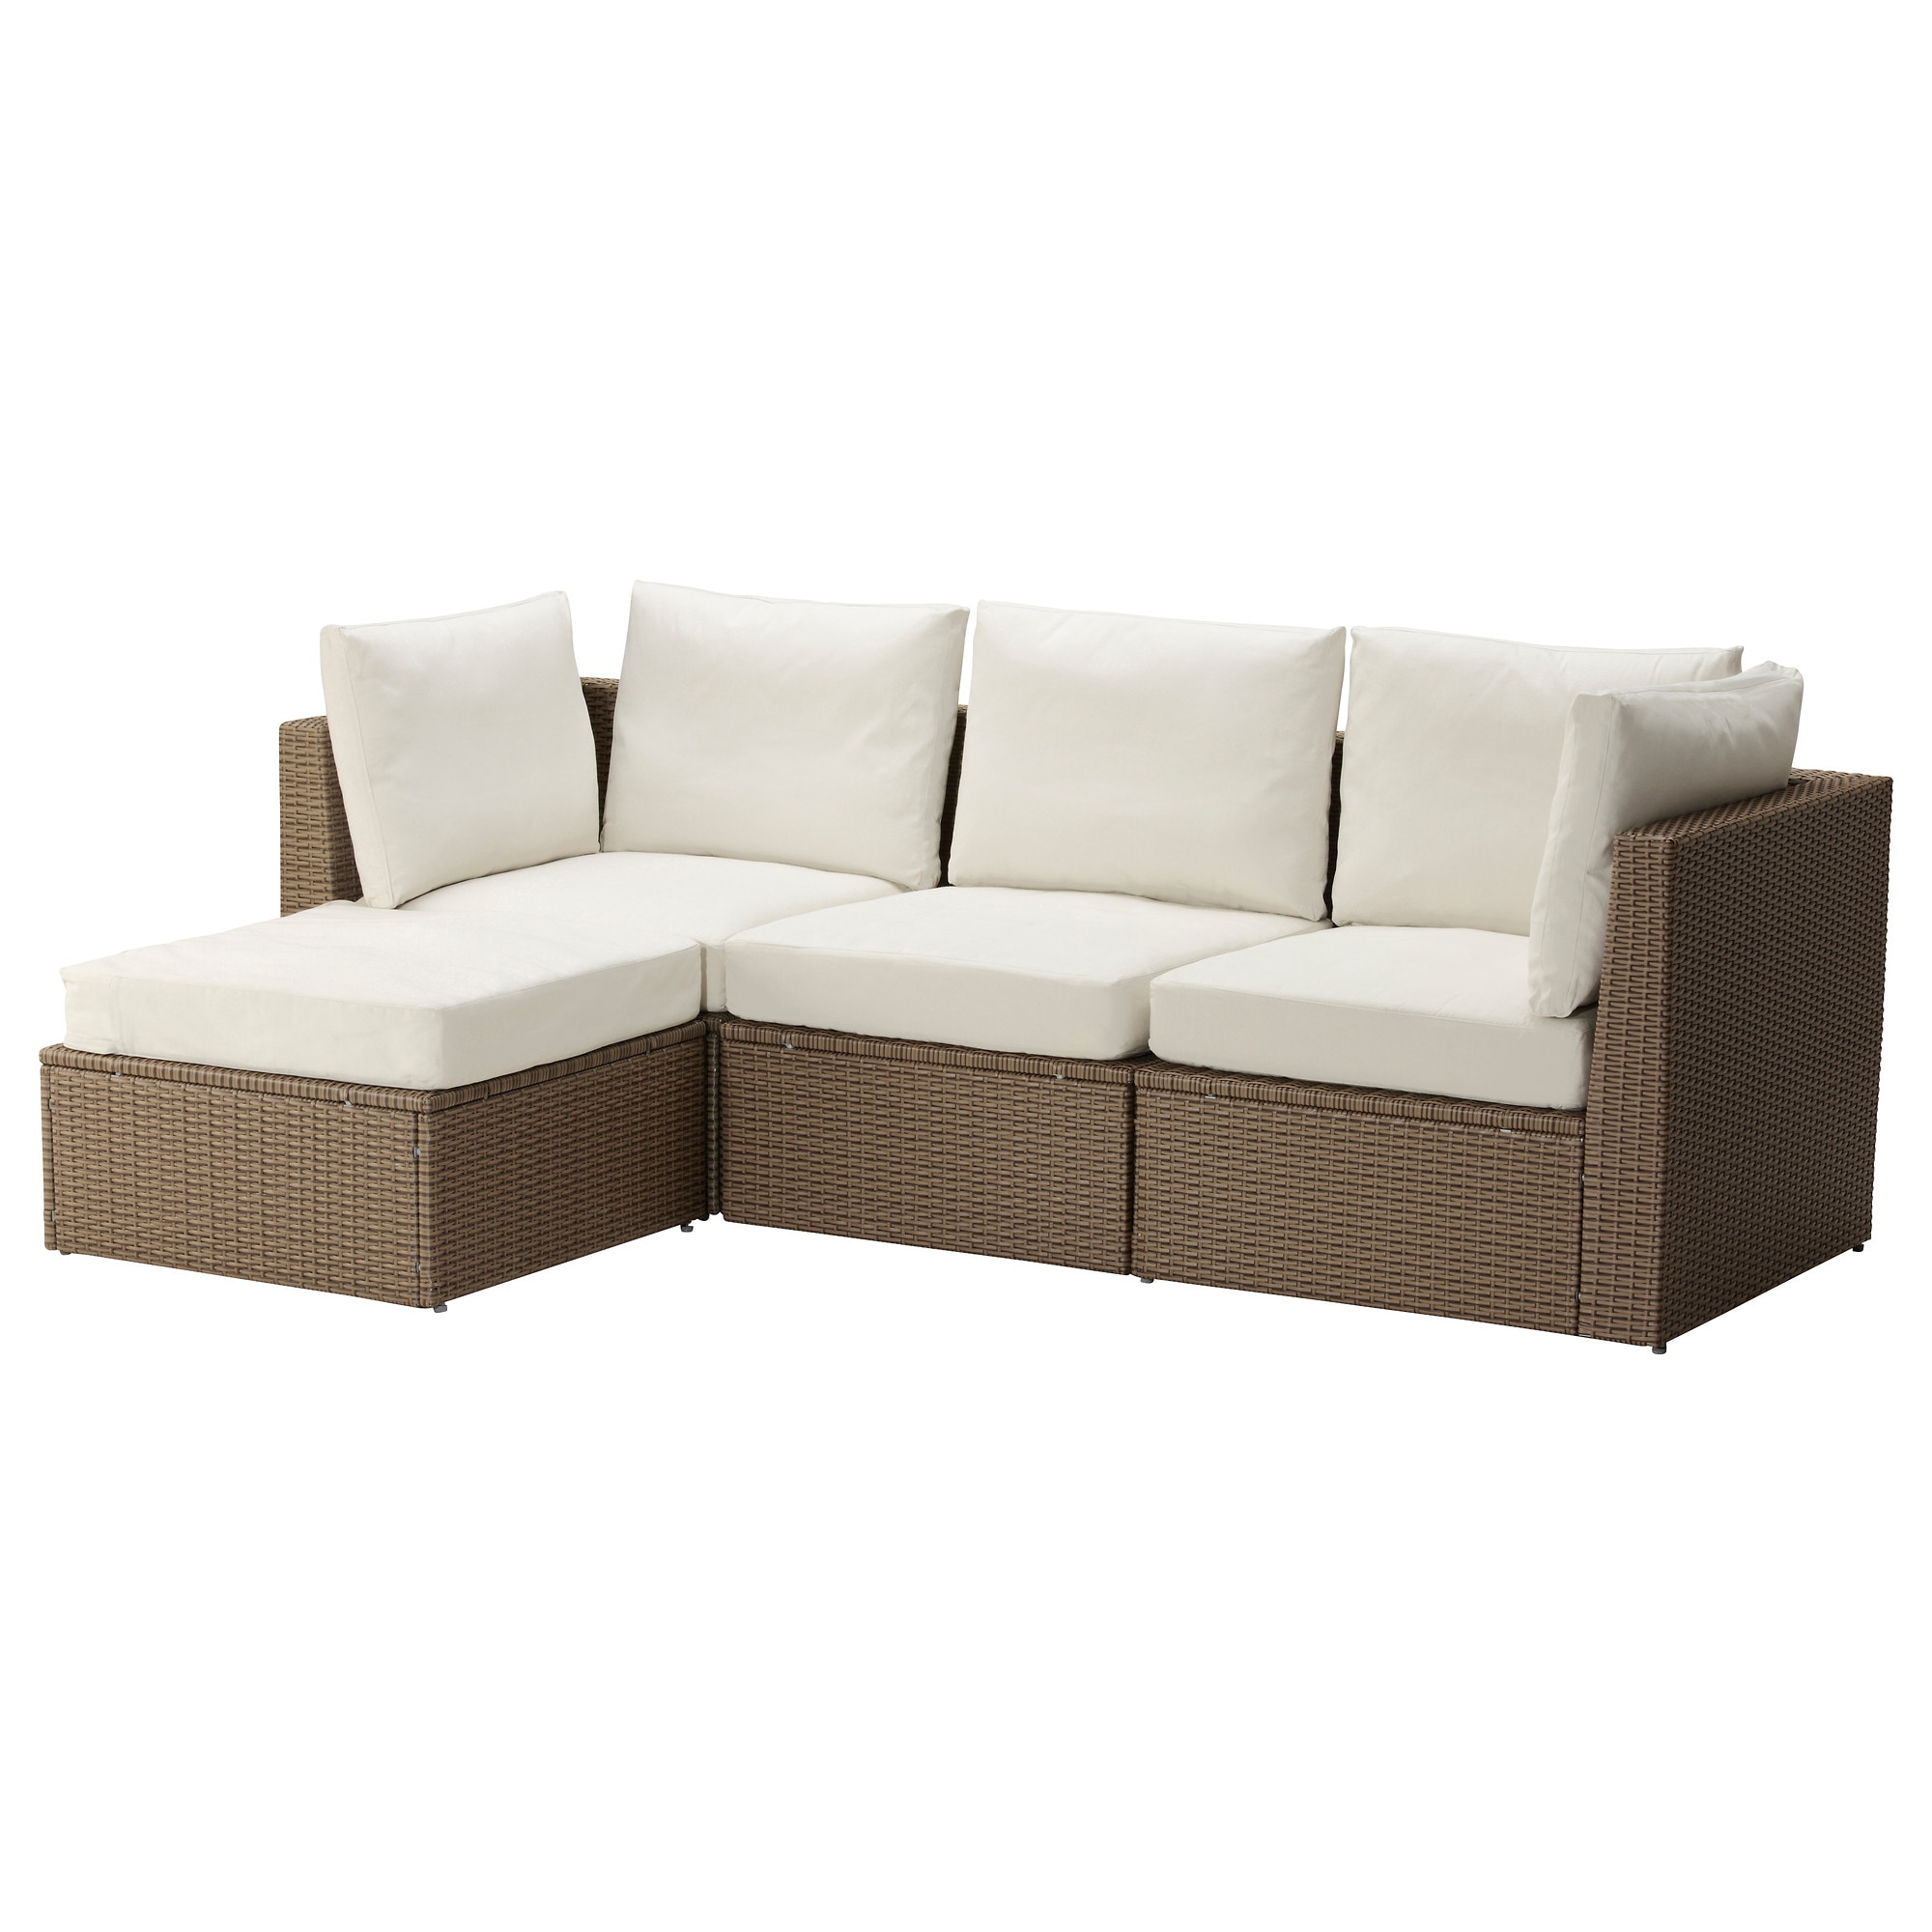 Ikea Sofa Set